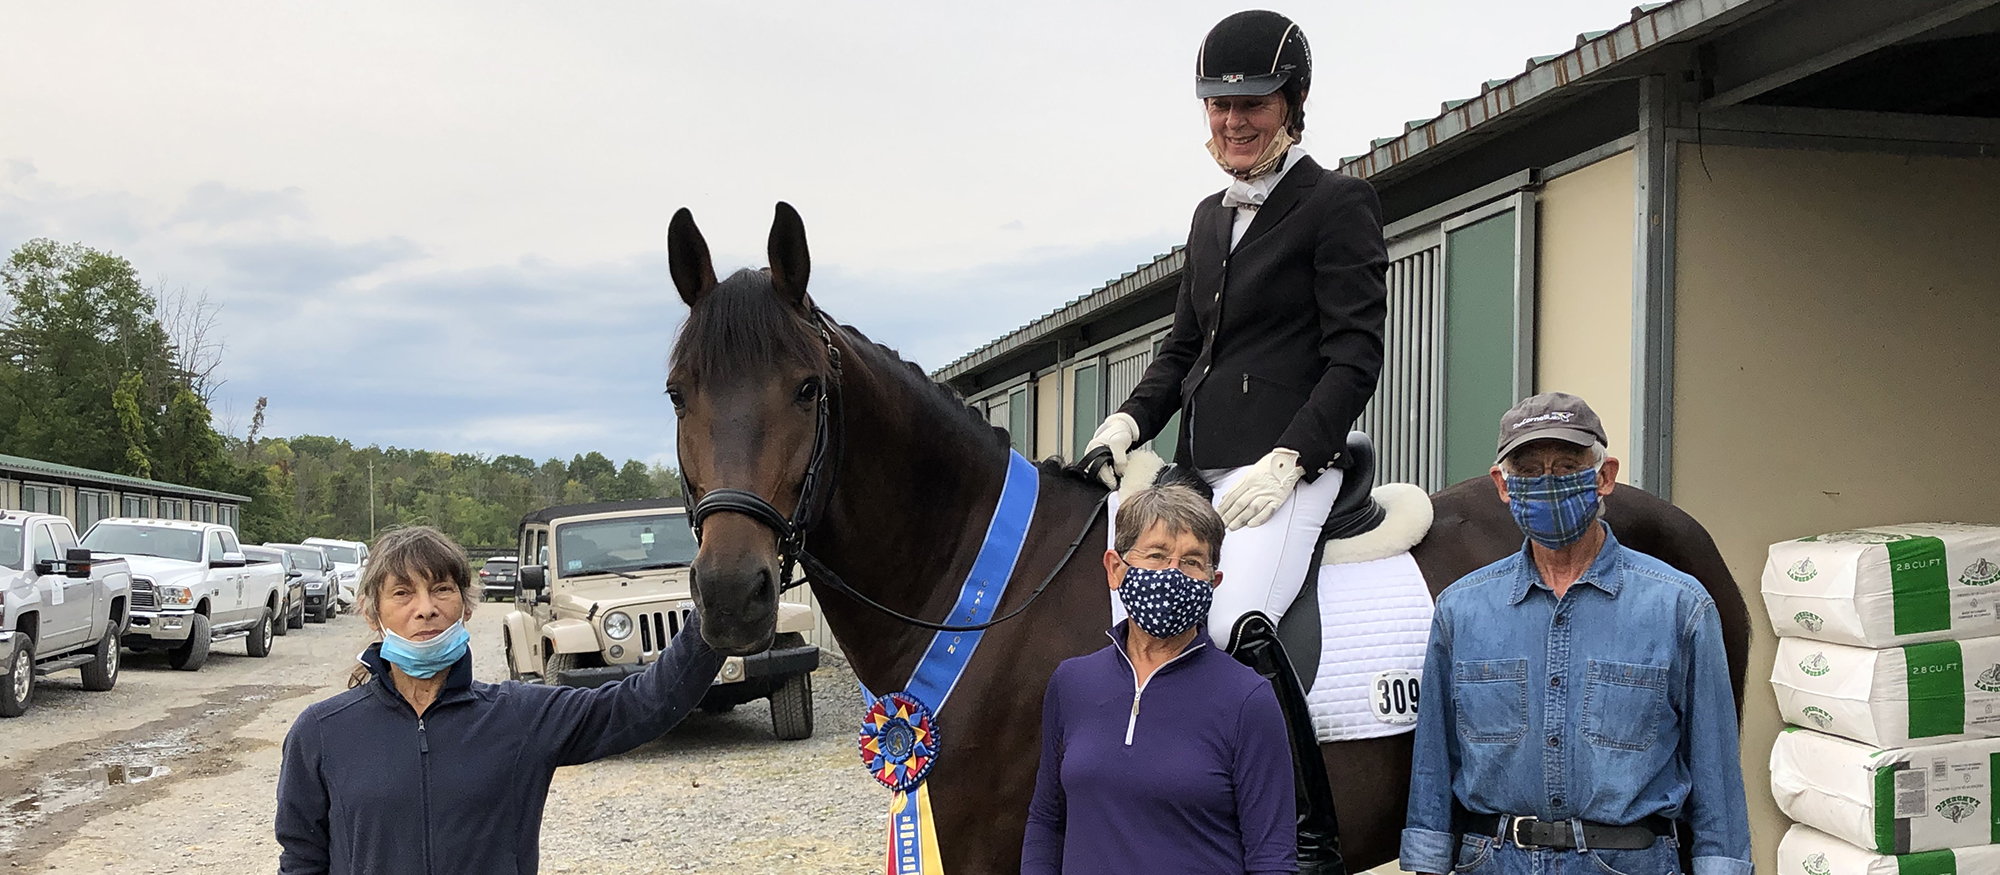 Jutta Lee Claims First-Place Finish at GAIG/USDF Region 8 Dressage Championships